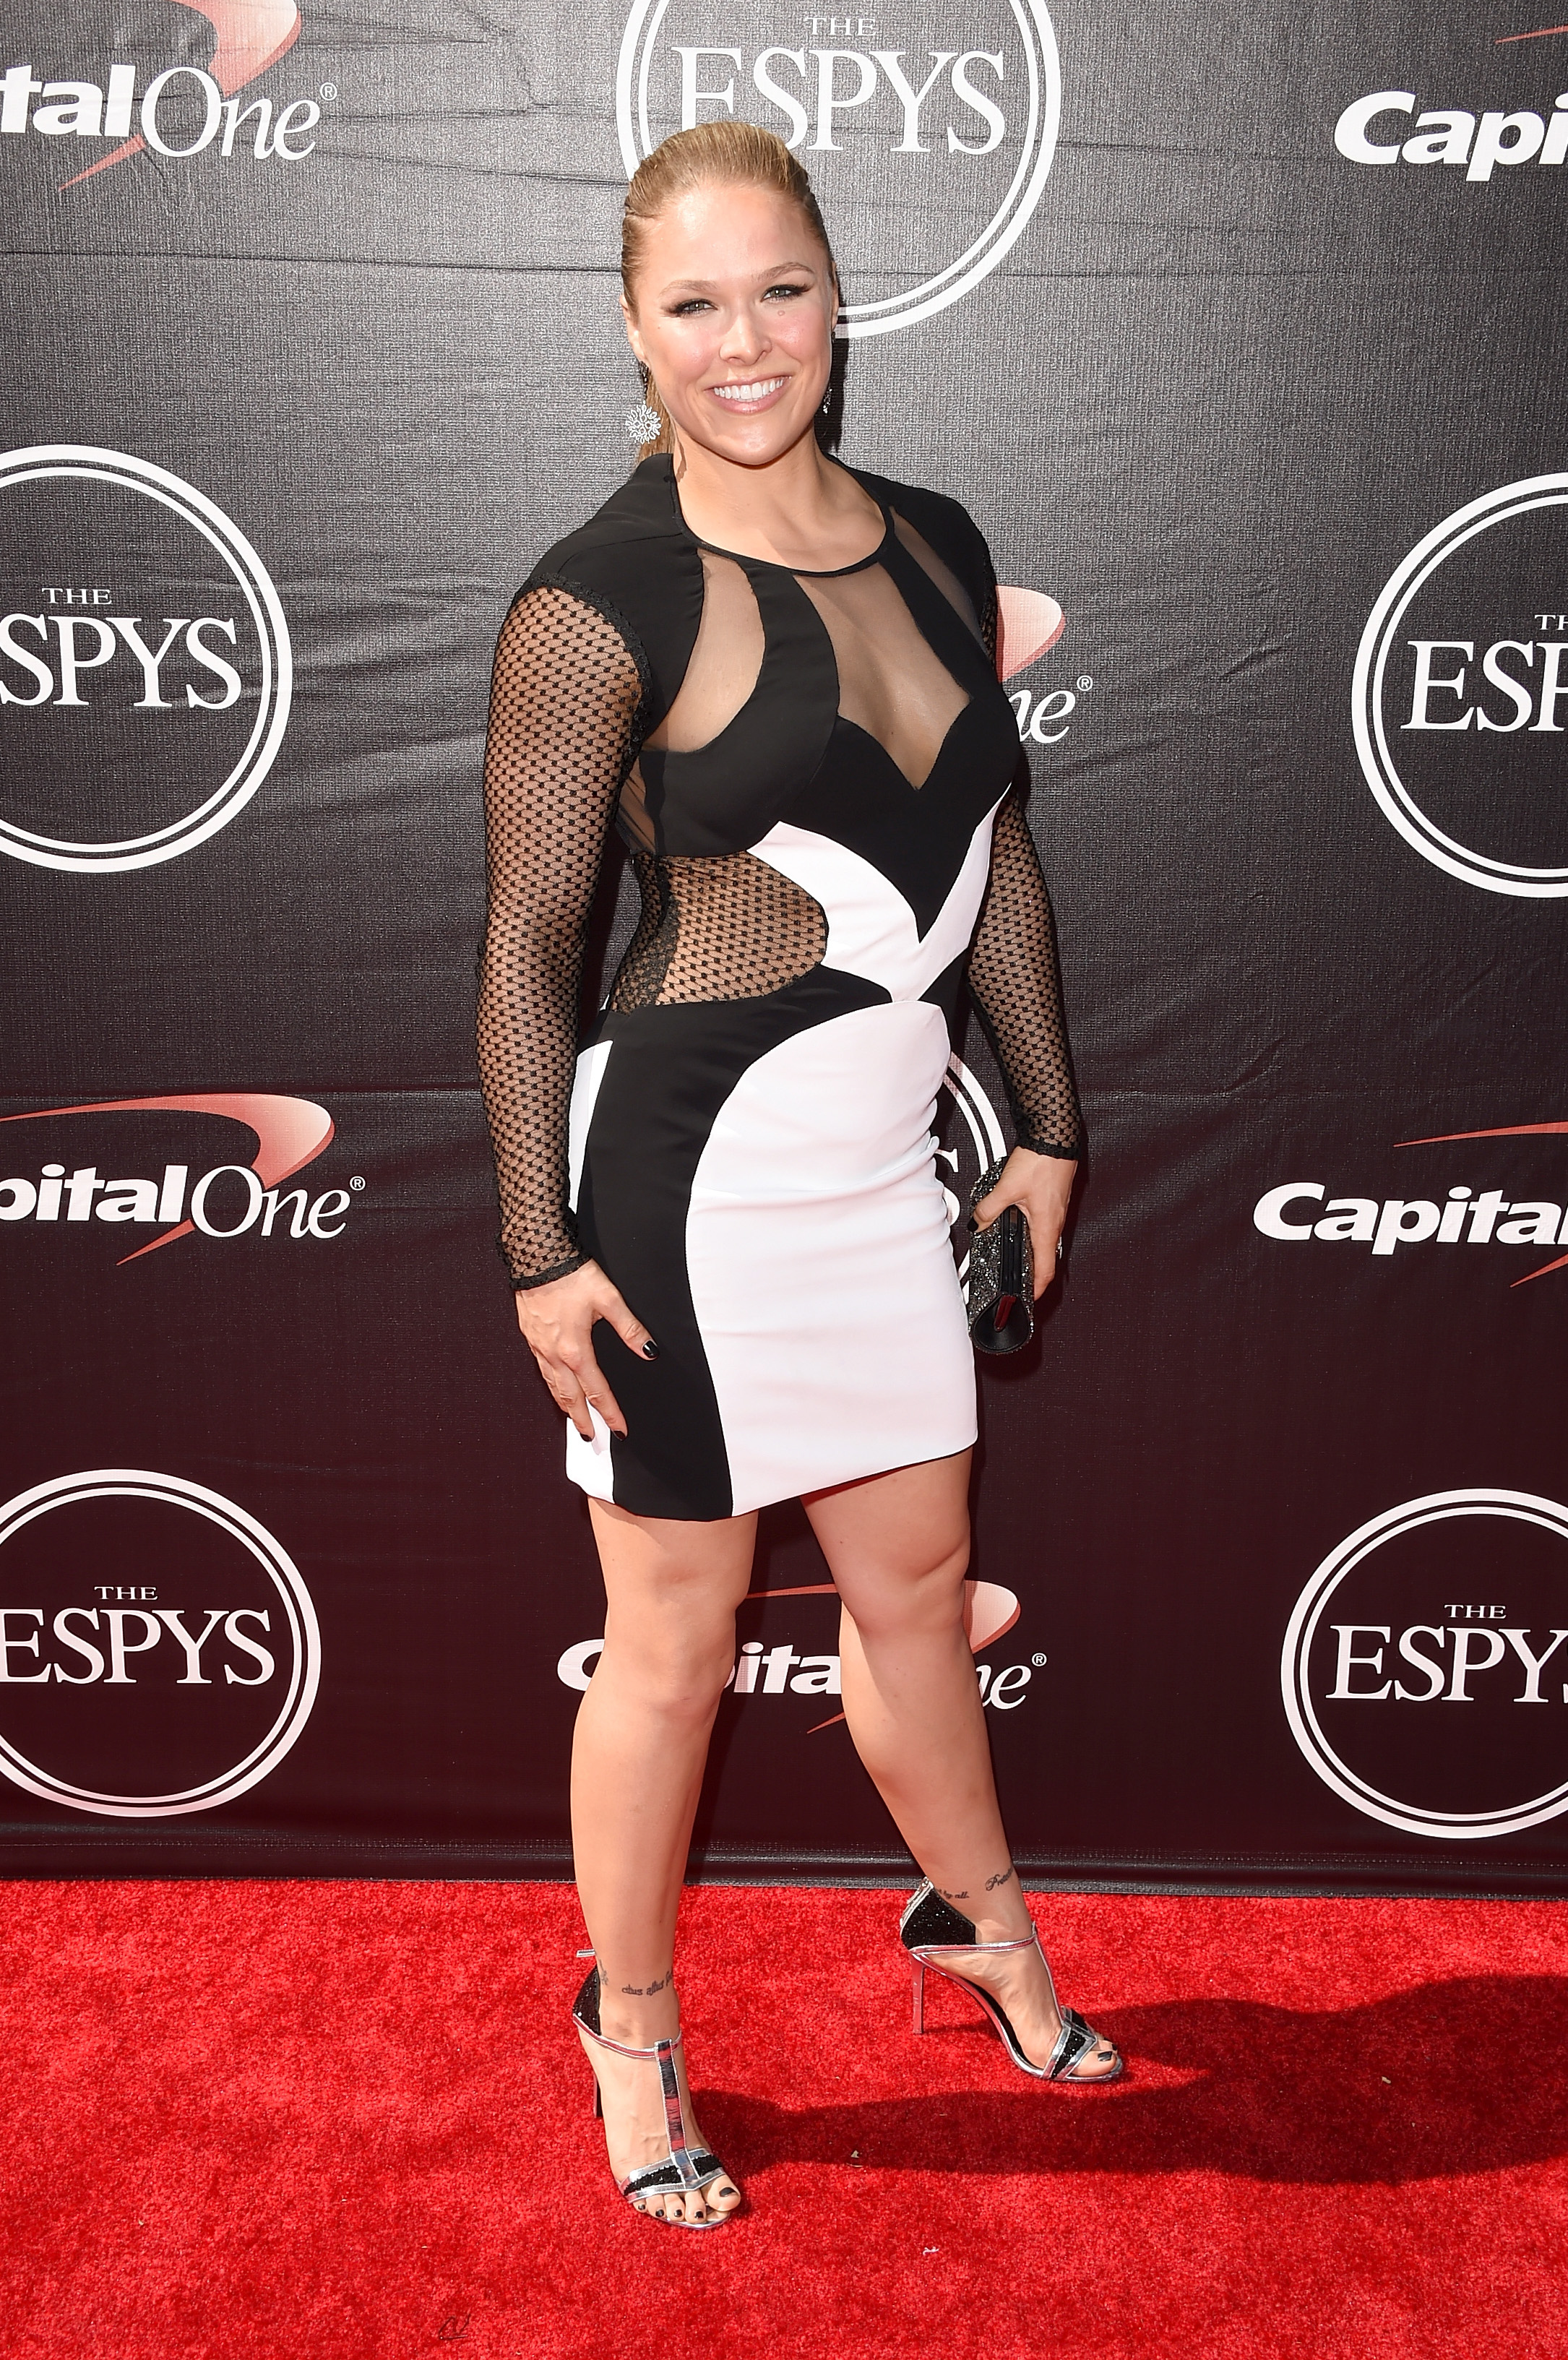 Ronda Rousey Sexy Dress P...